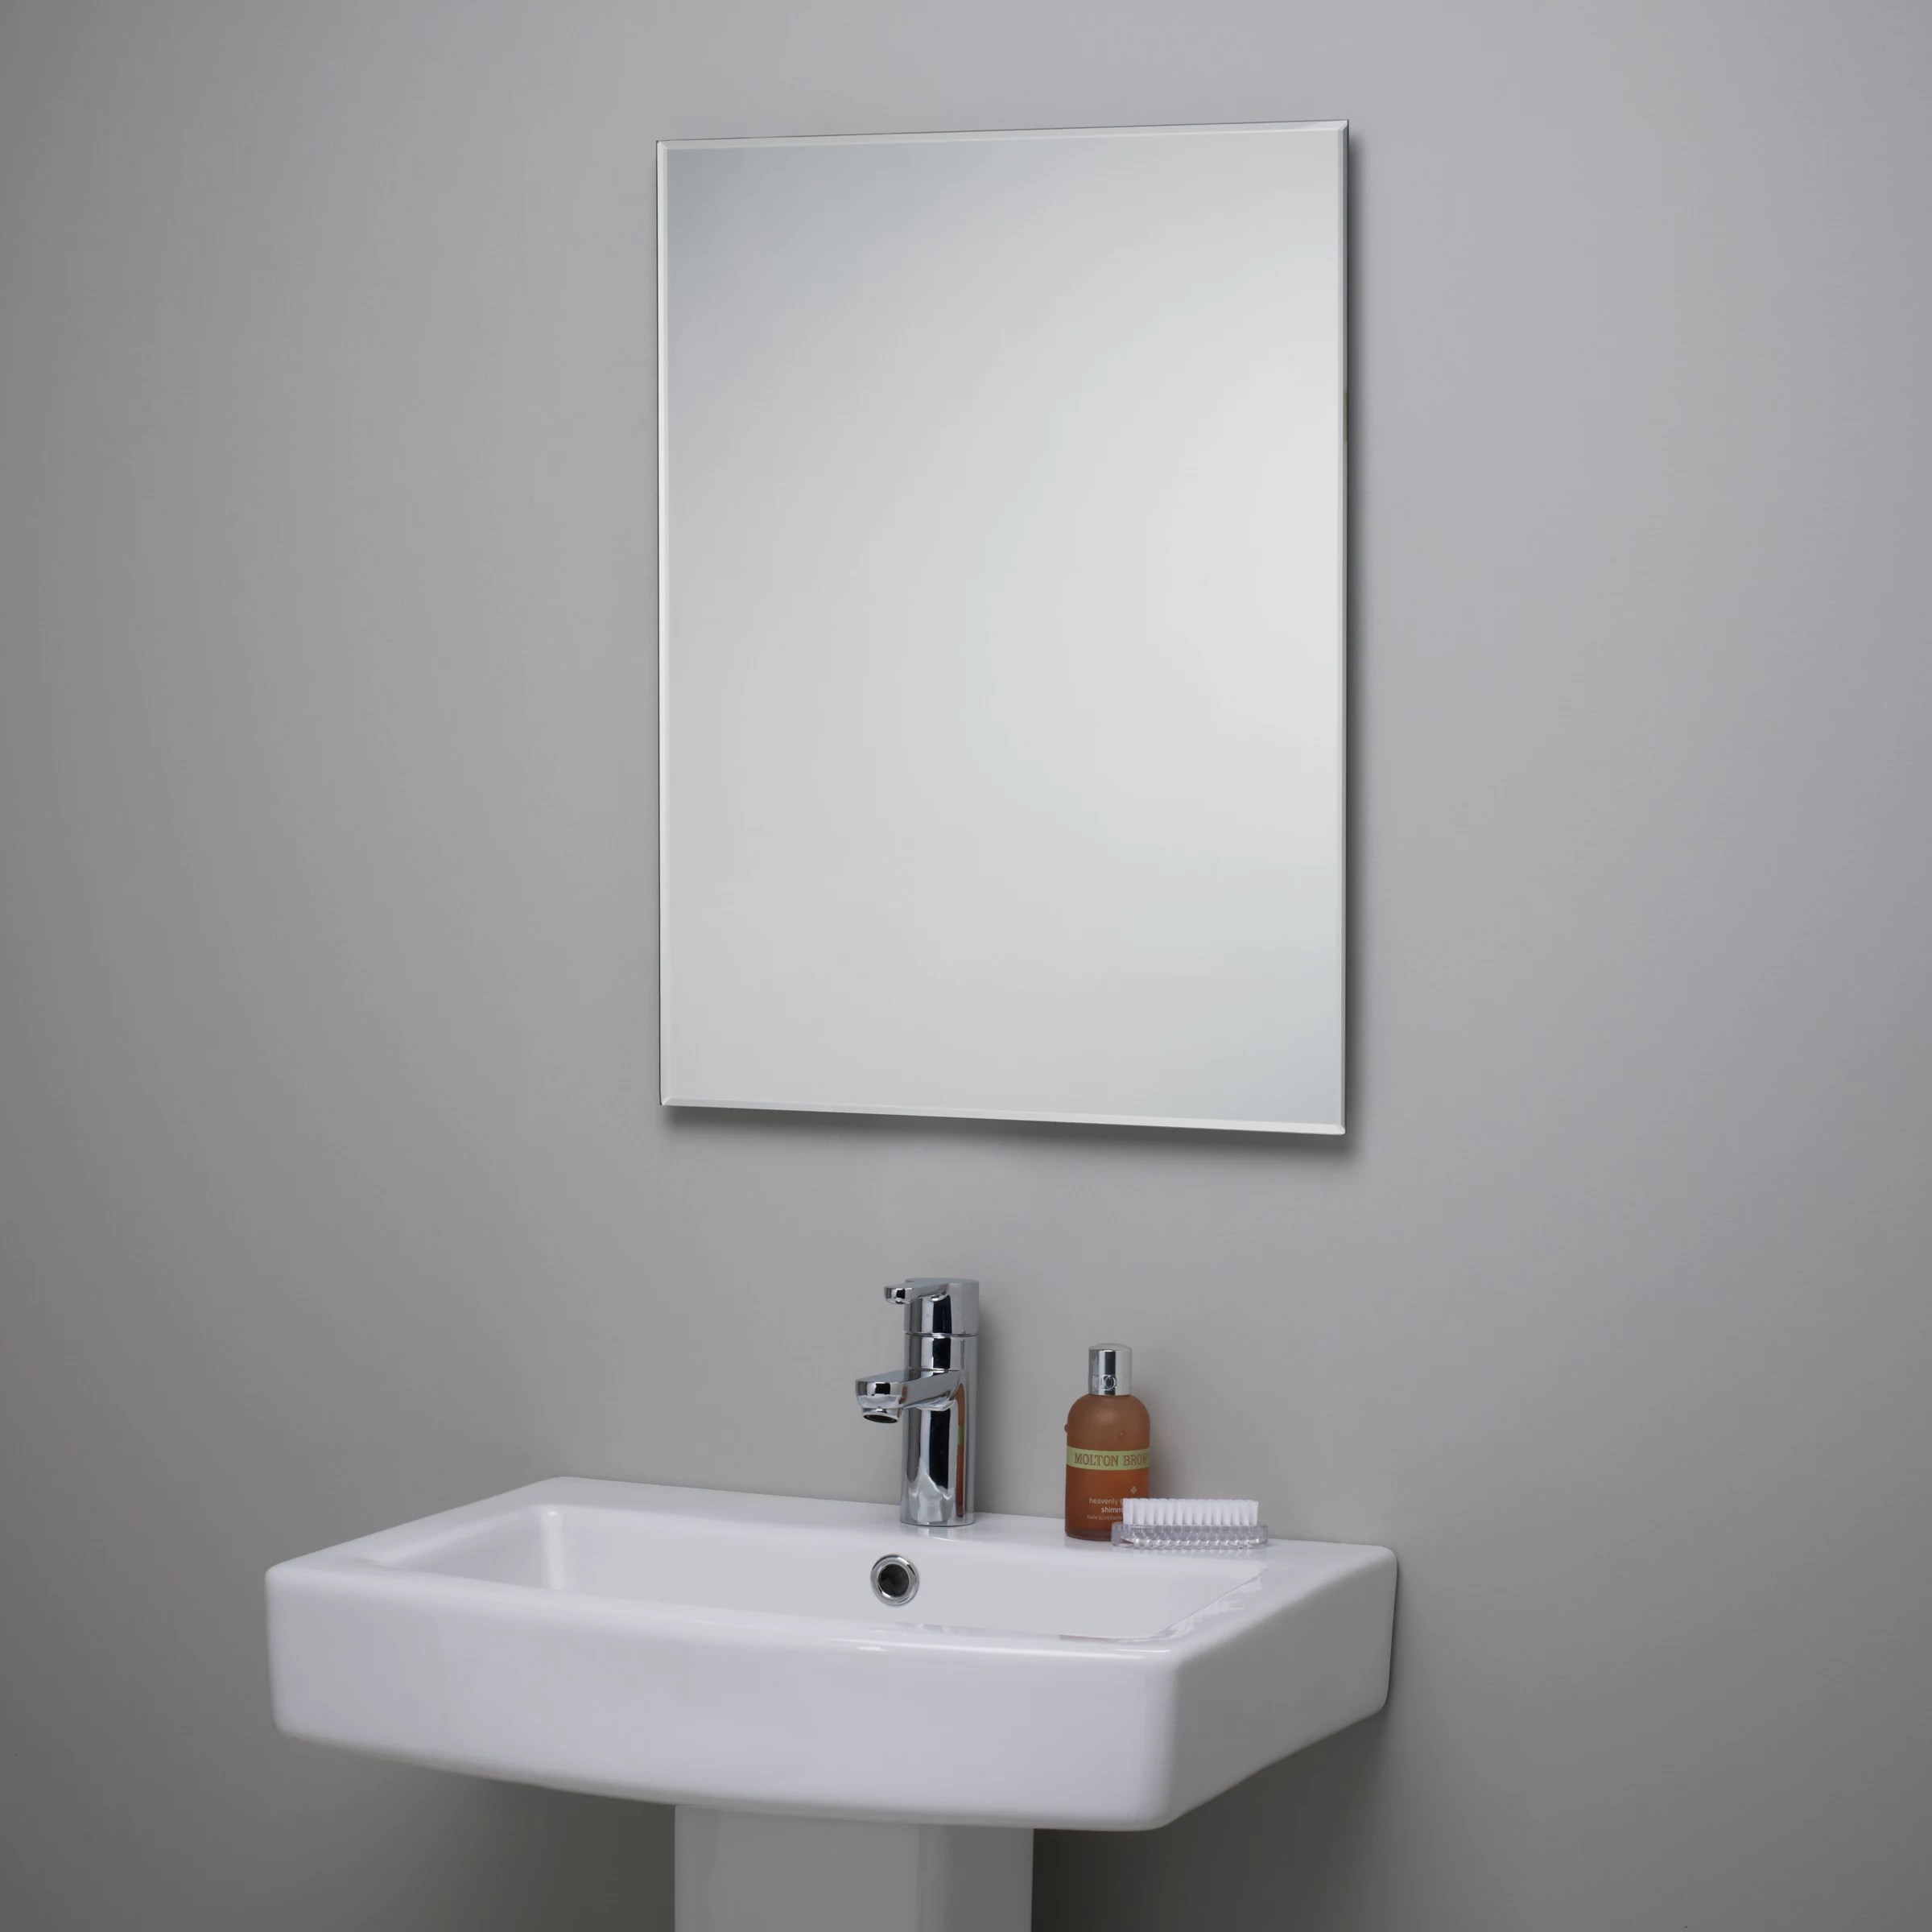 Wc Spiegel John Lewis Bevelled Edge Bathroom Mirror At John Lewis